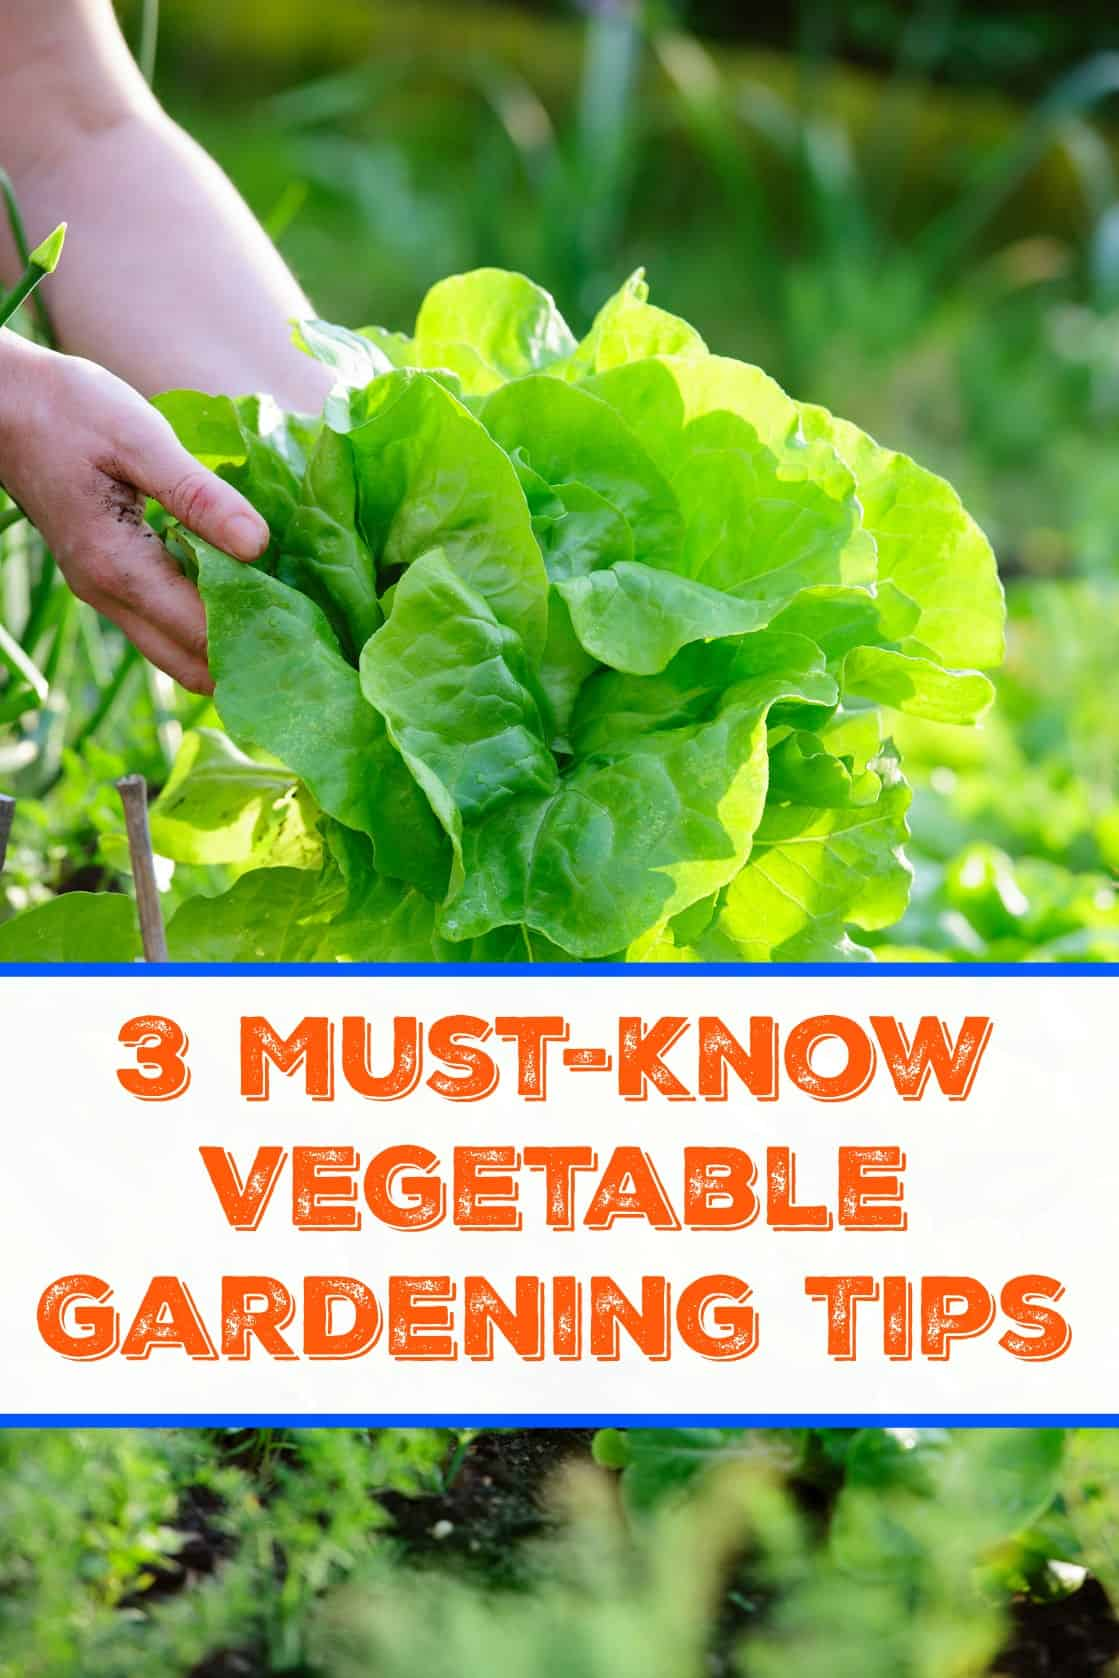 Must-Know Vegetable Gardening Tips